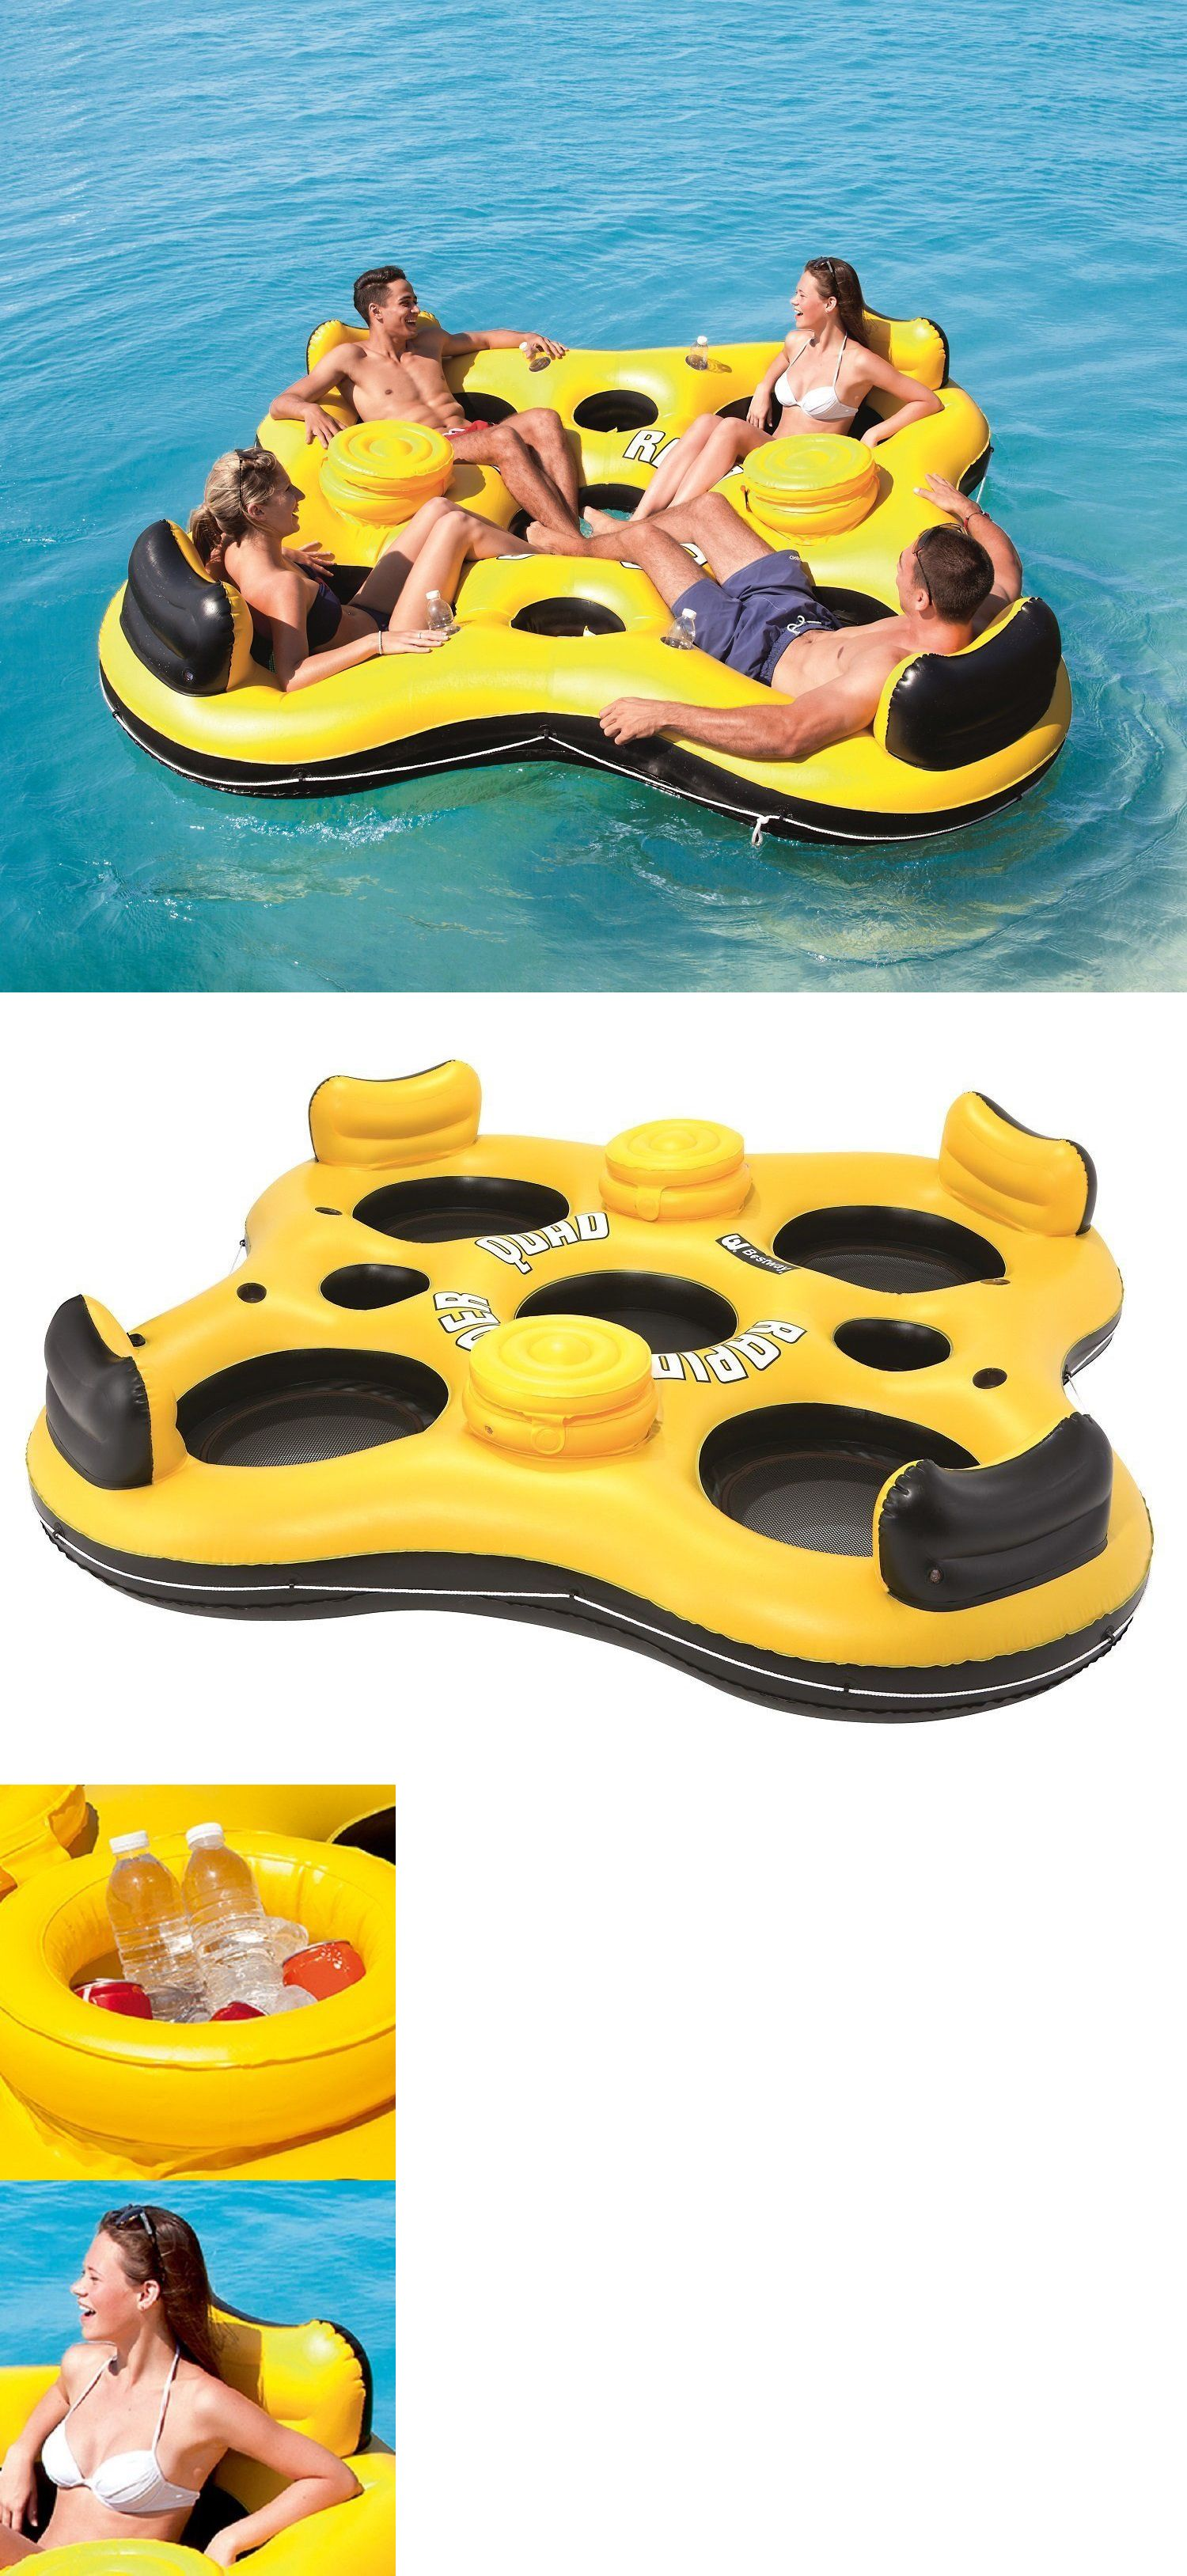 Floats Rafts Inflatable River Lake Pool Toy 4 Person